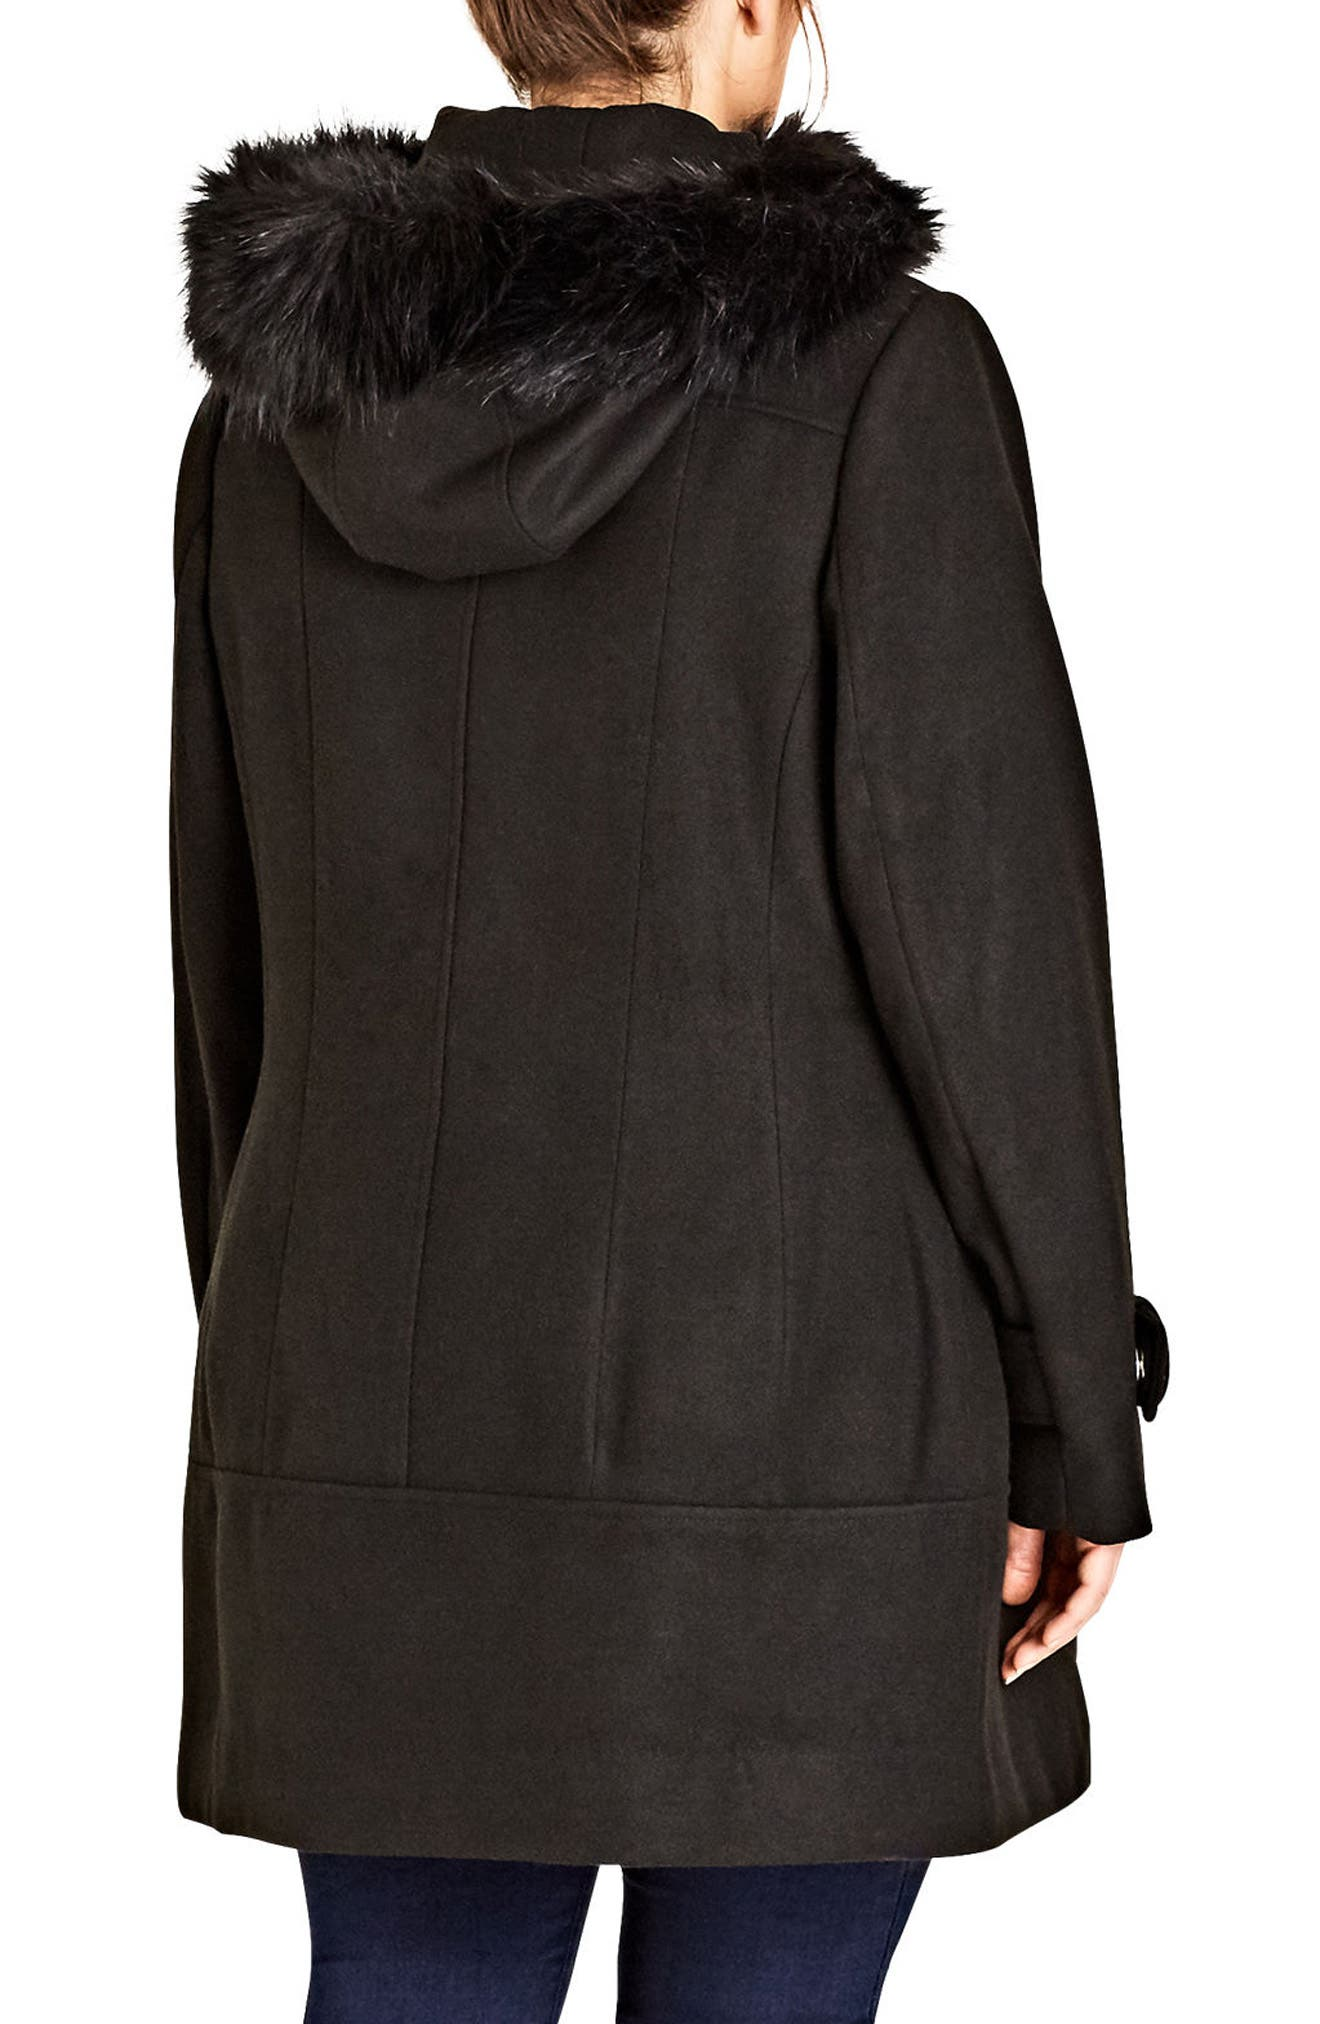 Alternate Image 2  - City Chic Wonderland Peacoat with Faux Fur Trim (Plus Size)